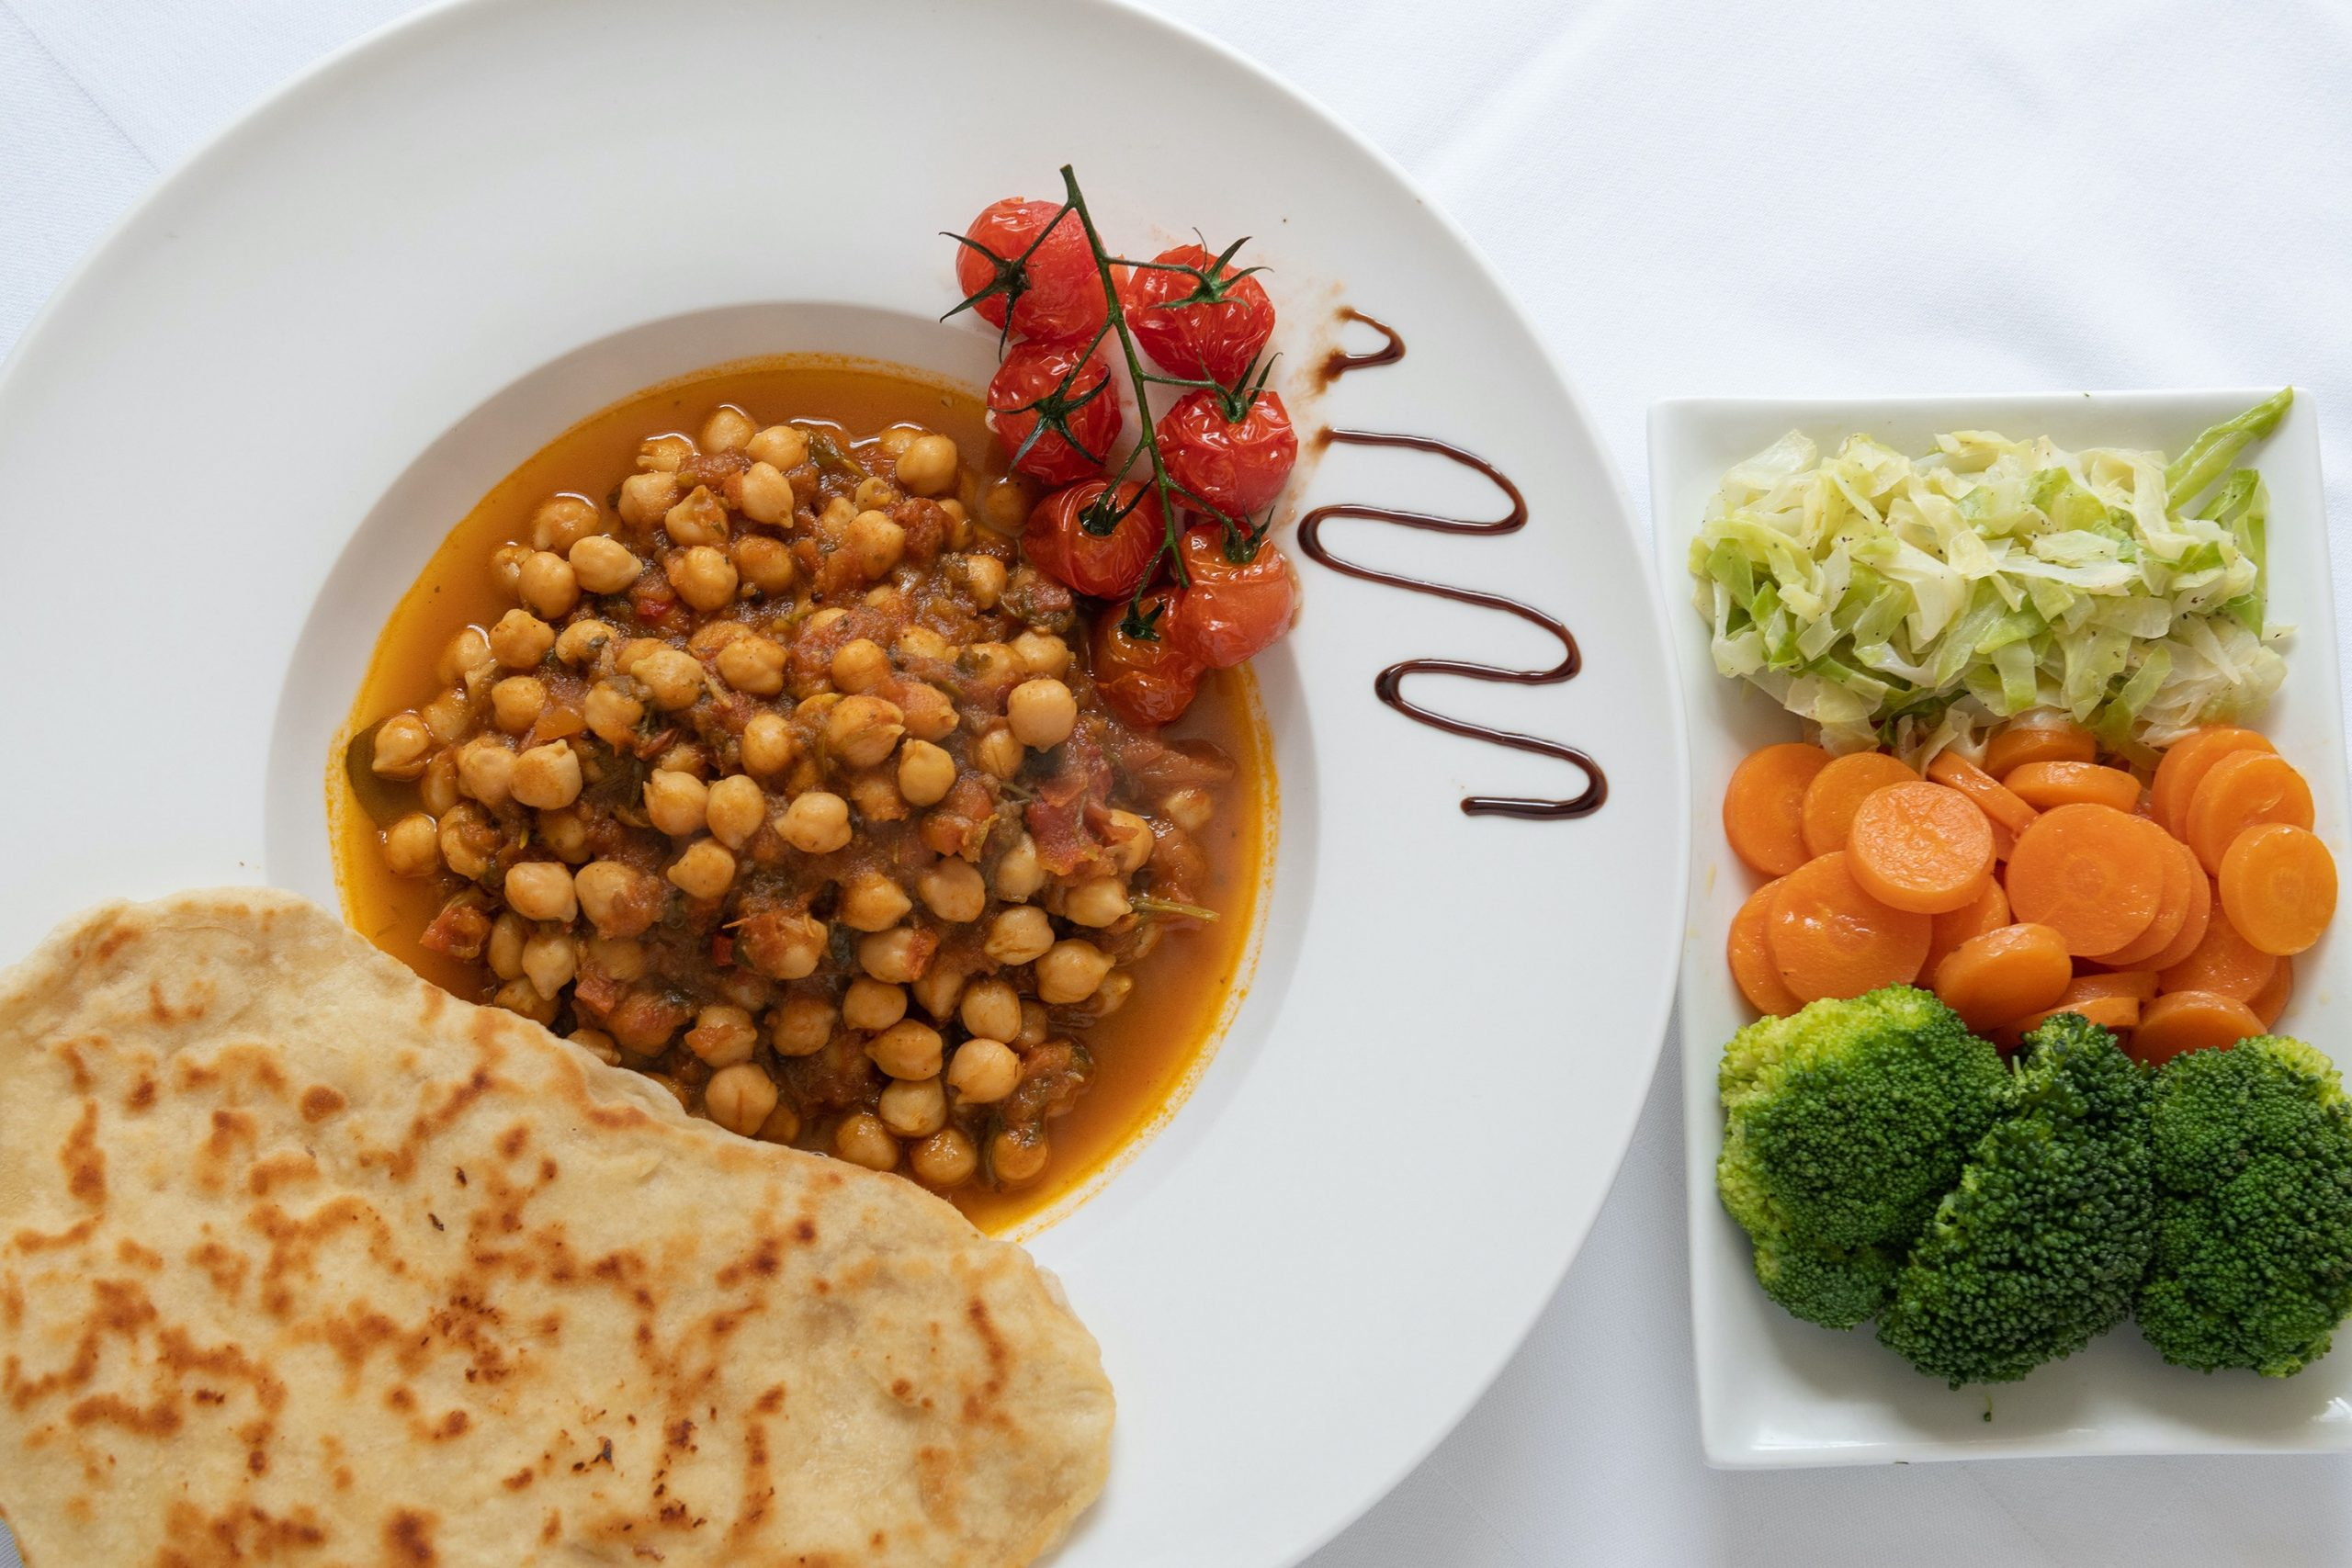 Curried Chickpeas in a Tomato Glaze, Garlic Flat Bread and Vegetables